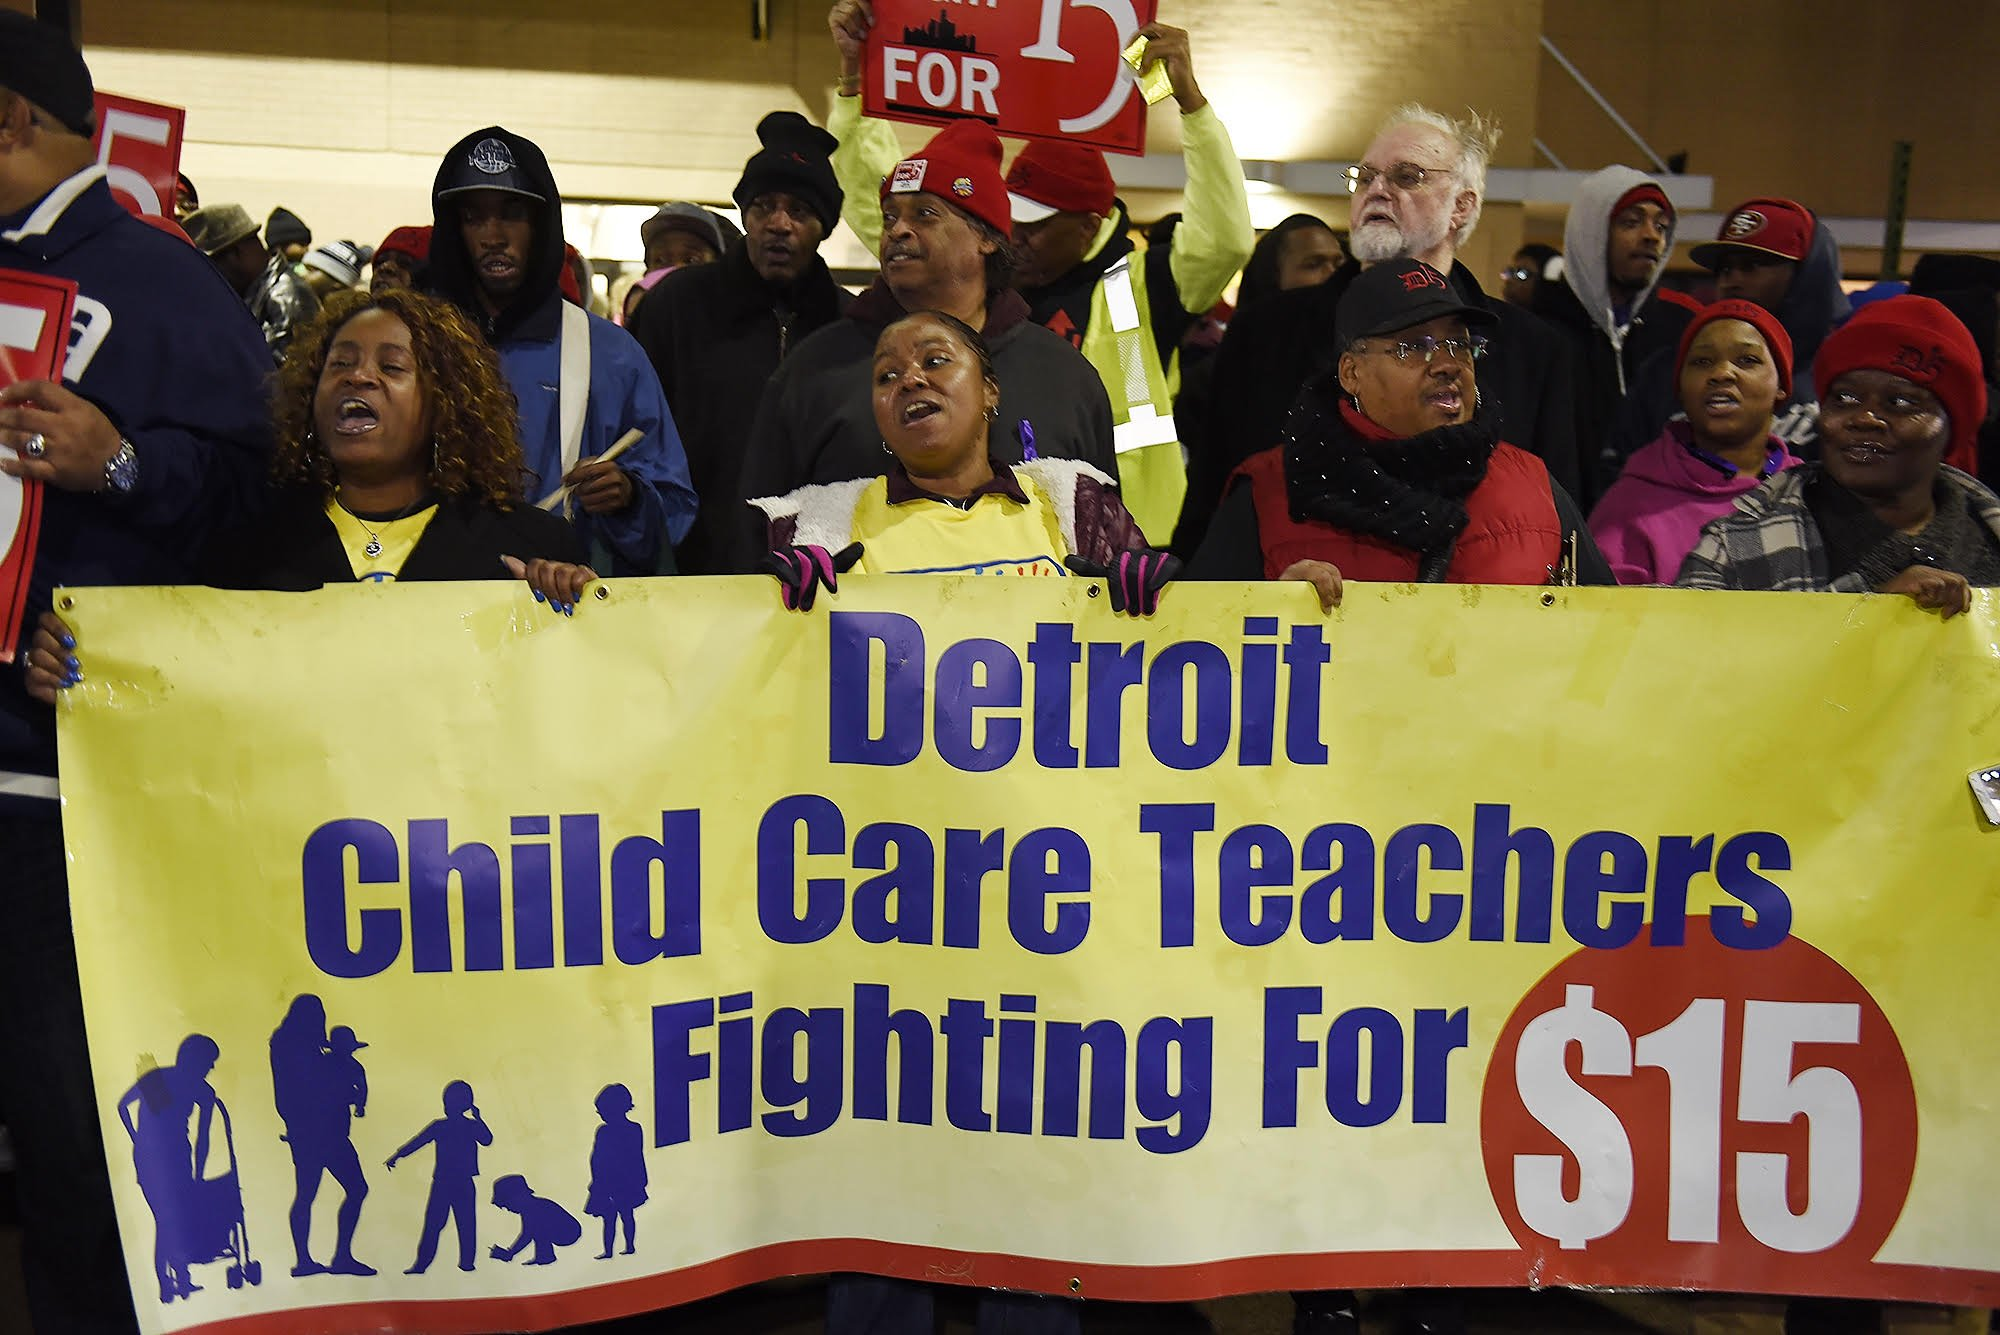 Child care workers in Detroit understand the struggle and will not be silenced. #FightFor15 #ChildCareForAll @Detroit_15 @fightfor15 https://t.co/0LcAlSfzJx